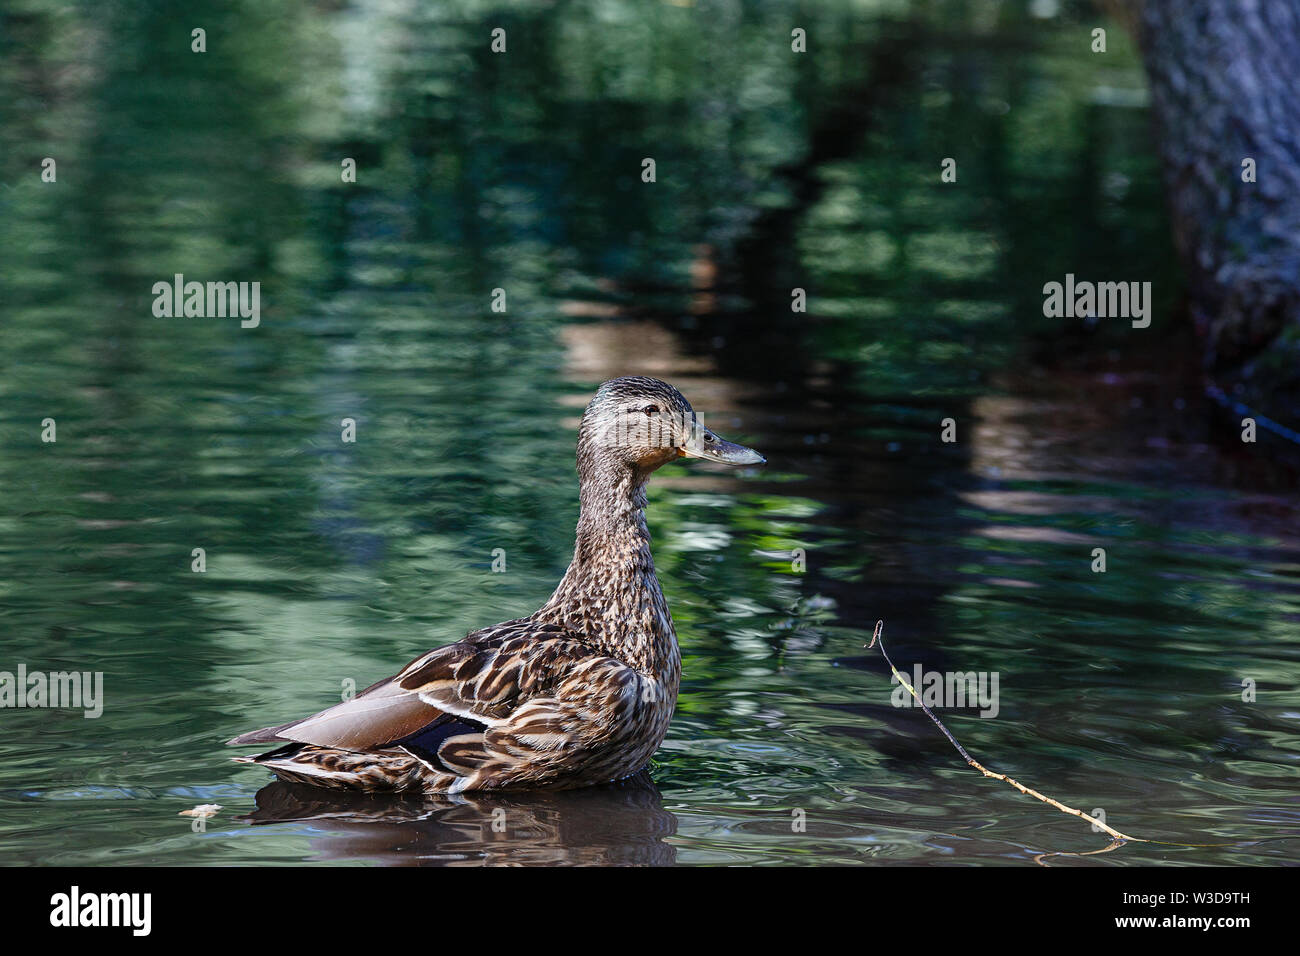 A duck in a pond, with waves on the surface of the water. - Stock Image